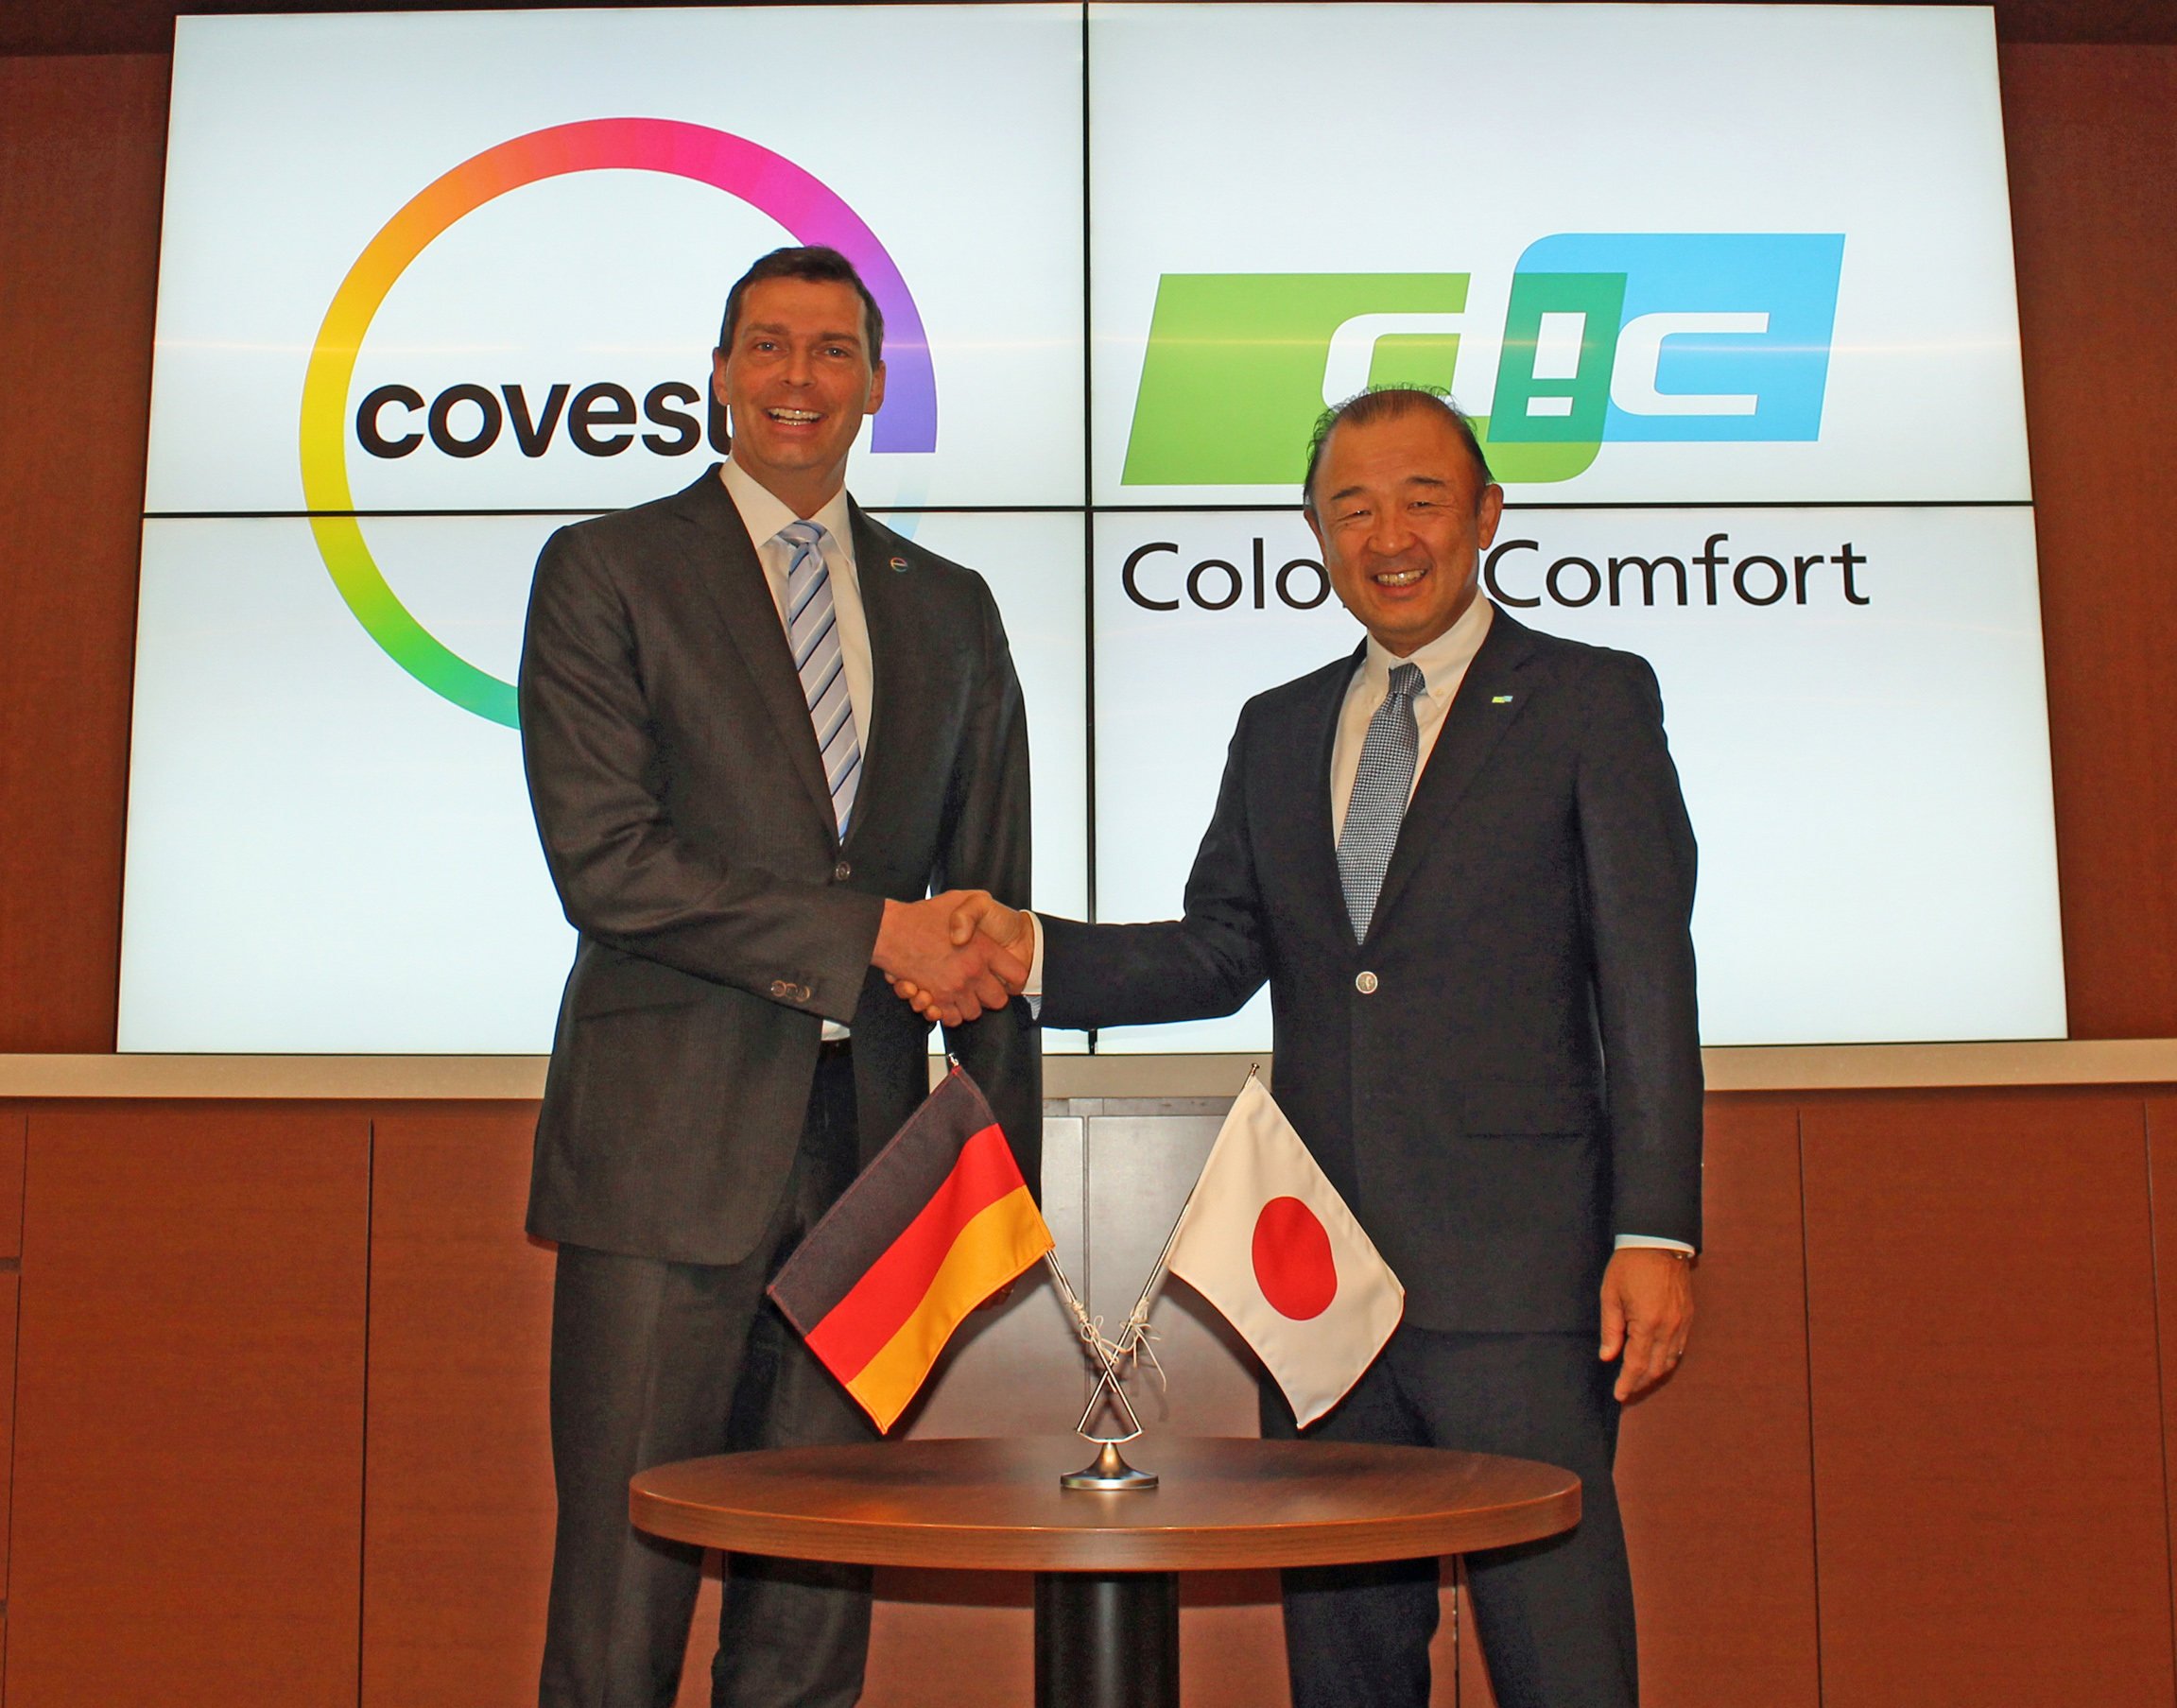 Kaoru Ino, Representative Director, President and CEO of DIC Corporation (right), and Dr. Markus Steilemann, CEO of Covestro. (Source: Covestro)